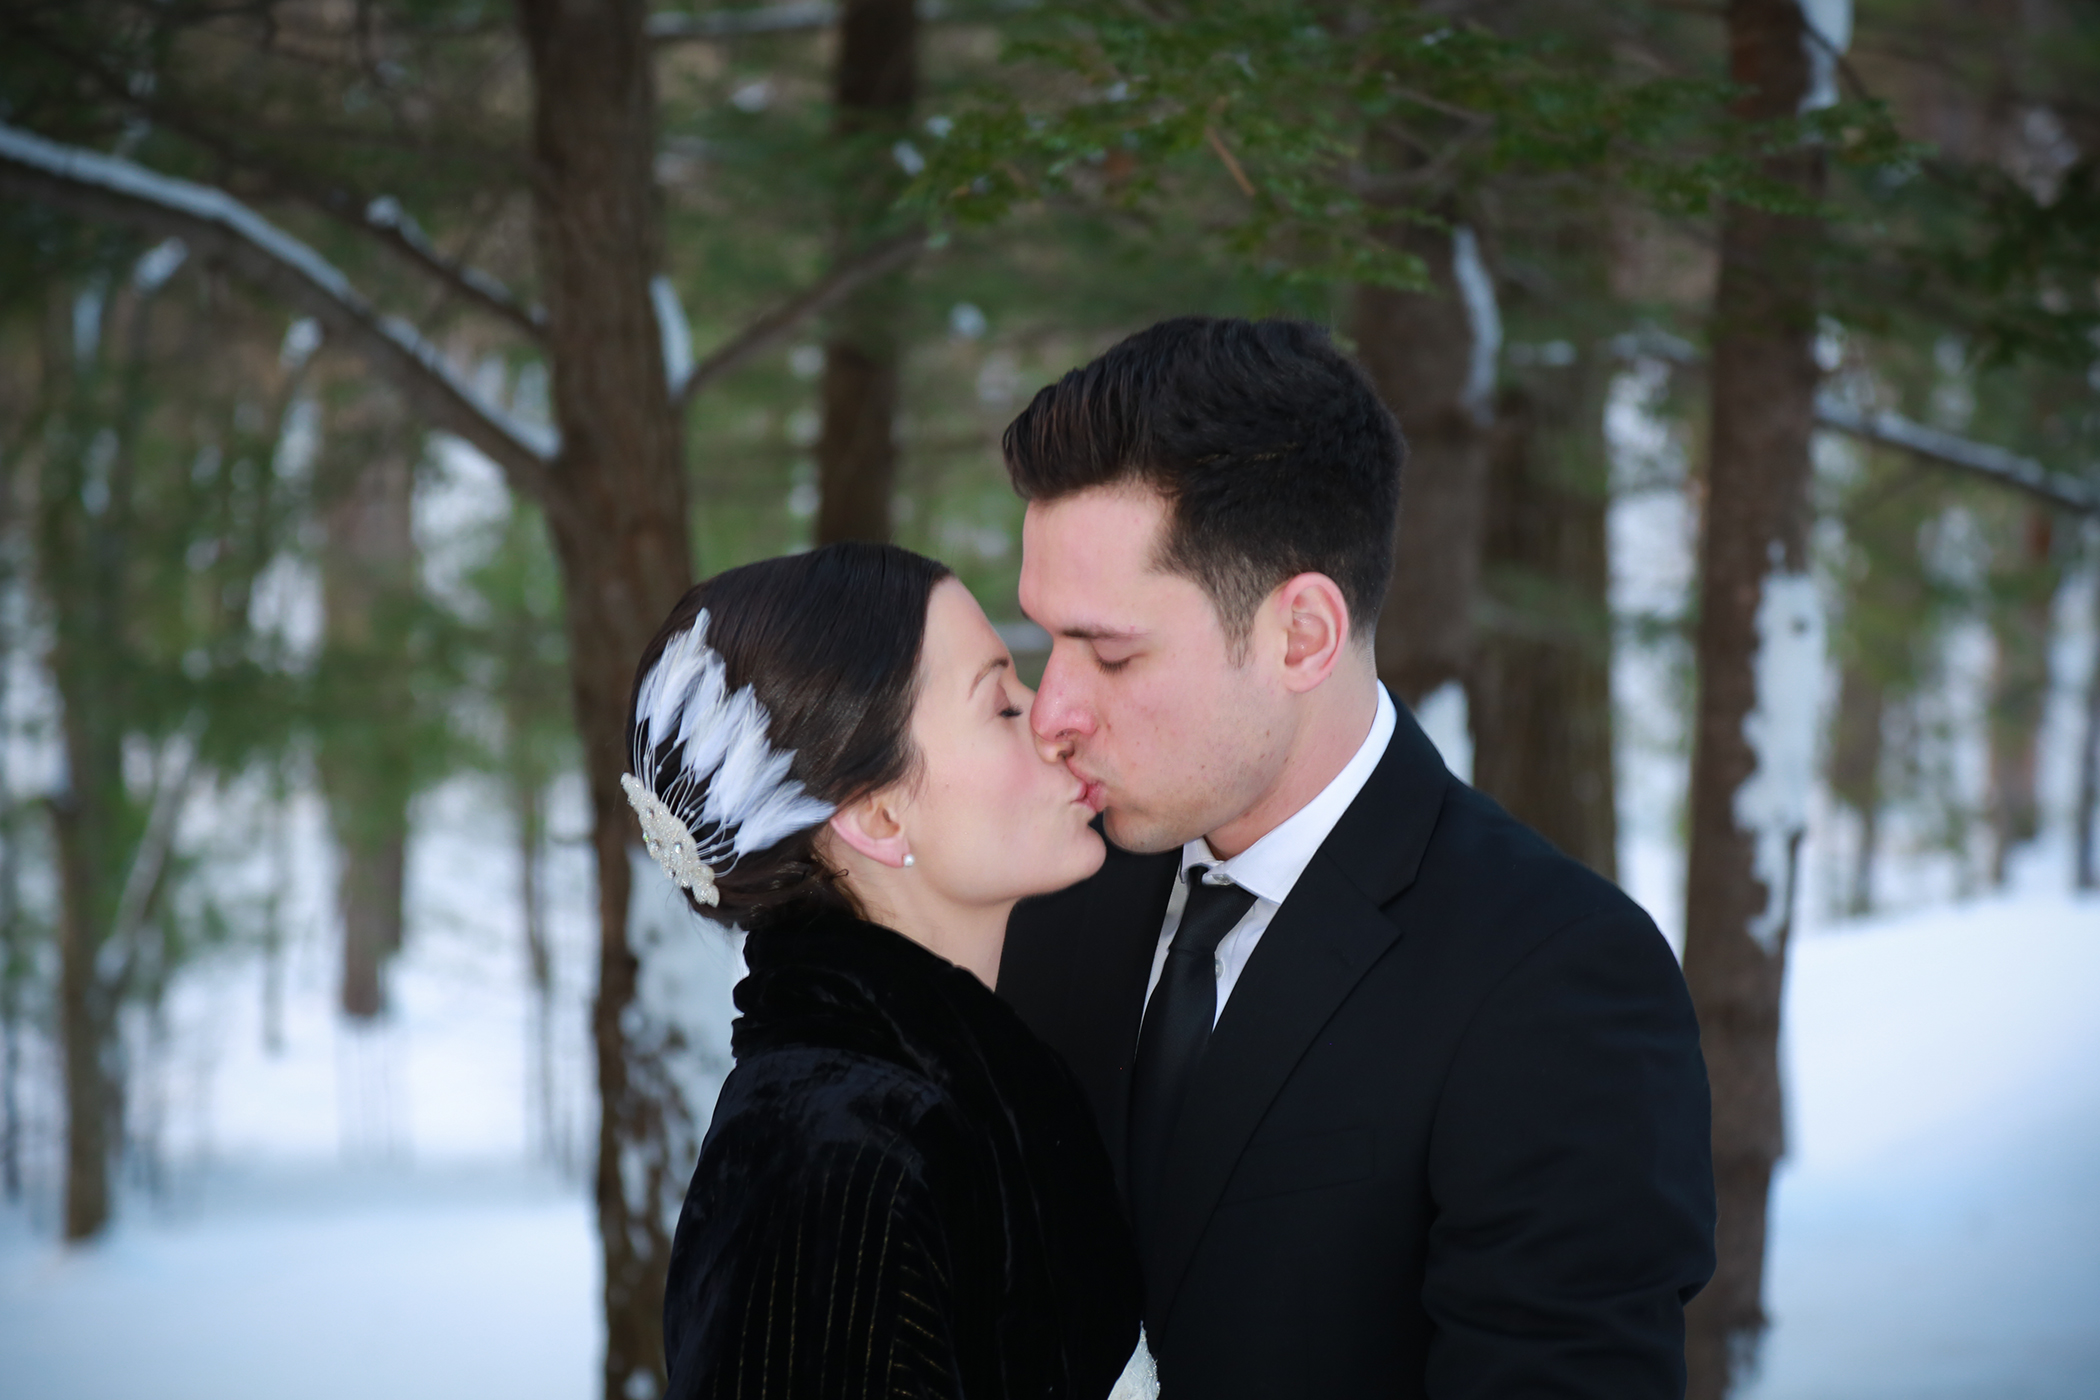 Wedding Photograph of a couple in the snow near Woodstock, NY